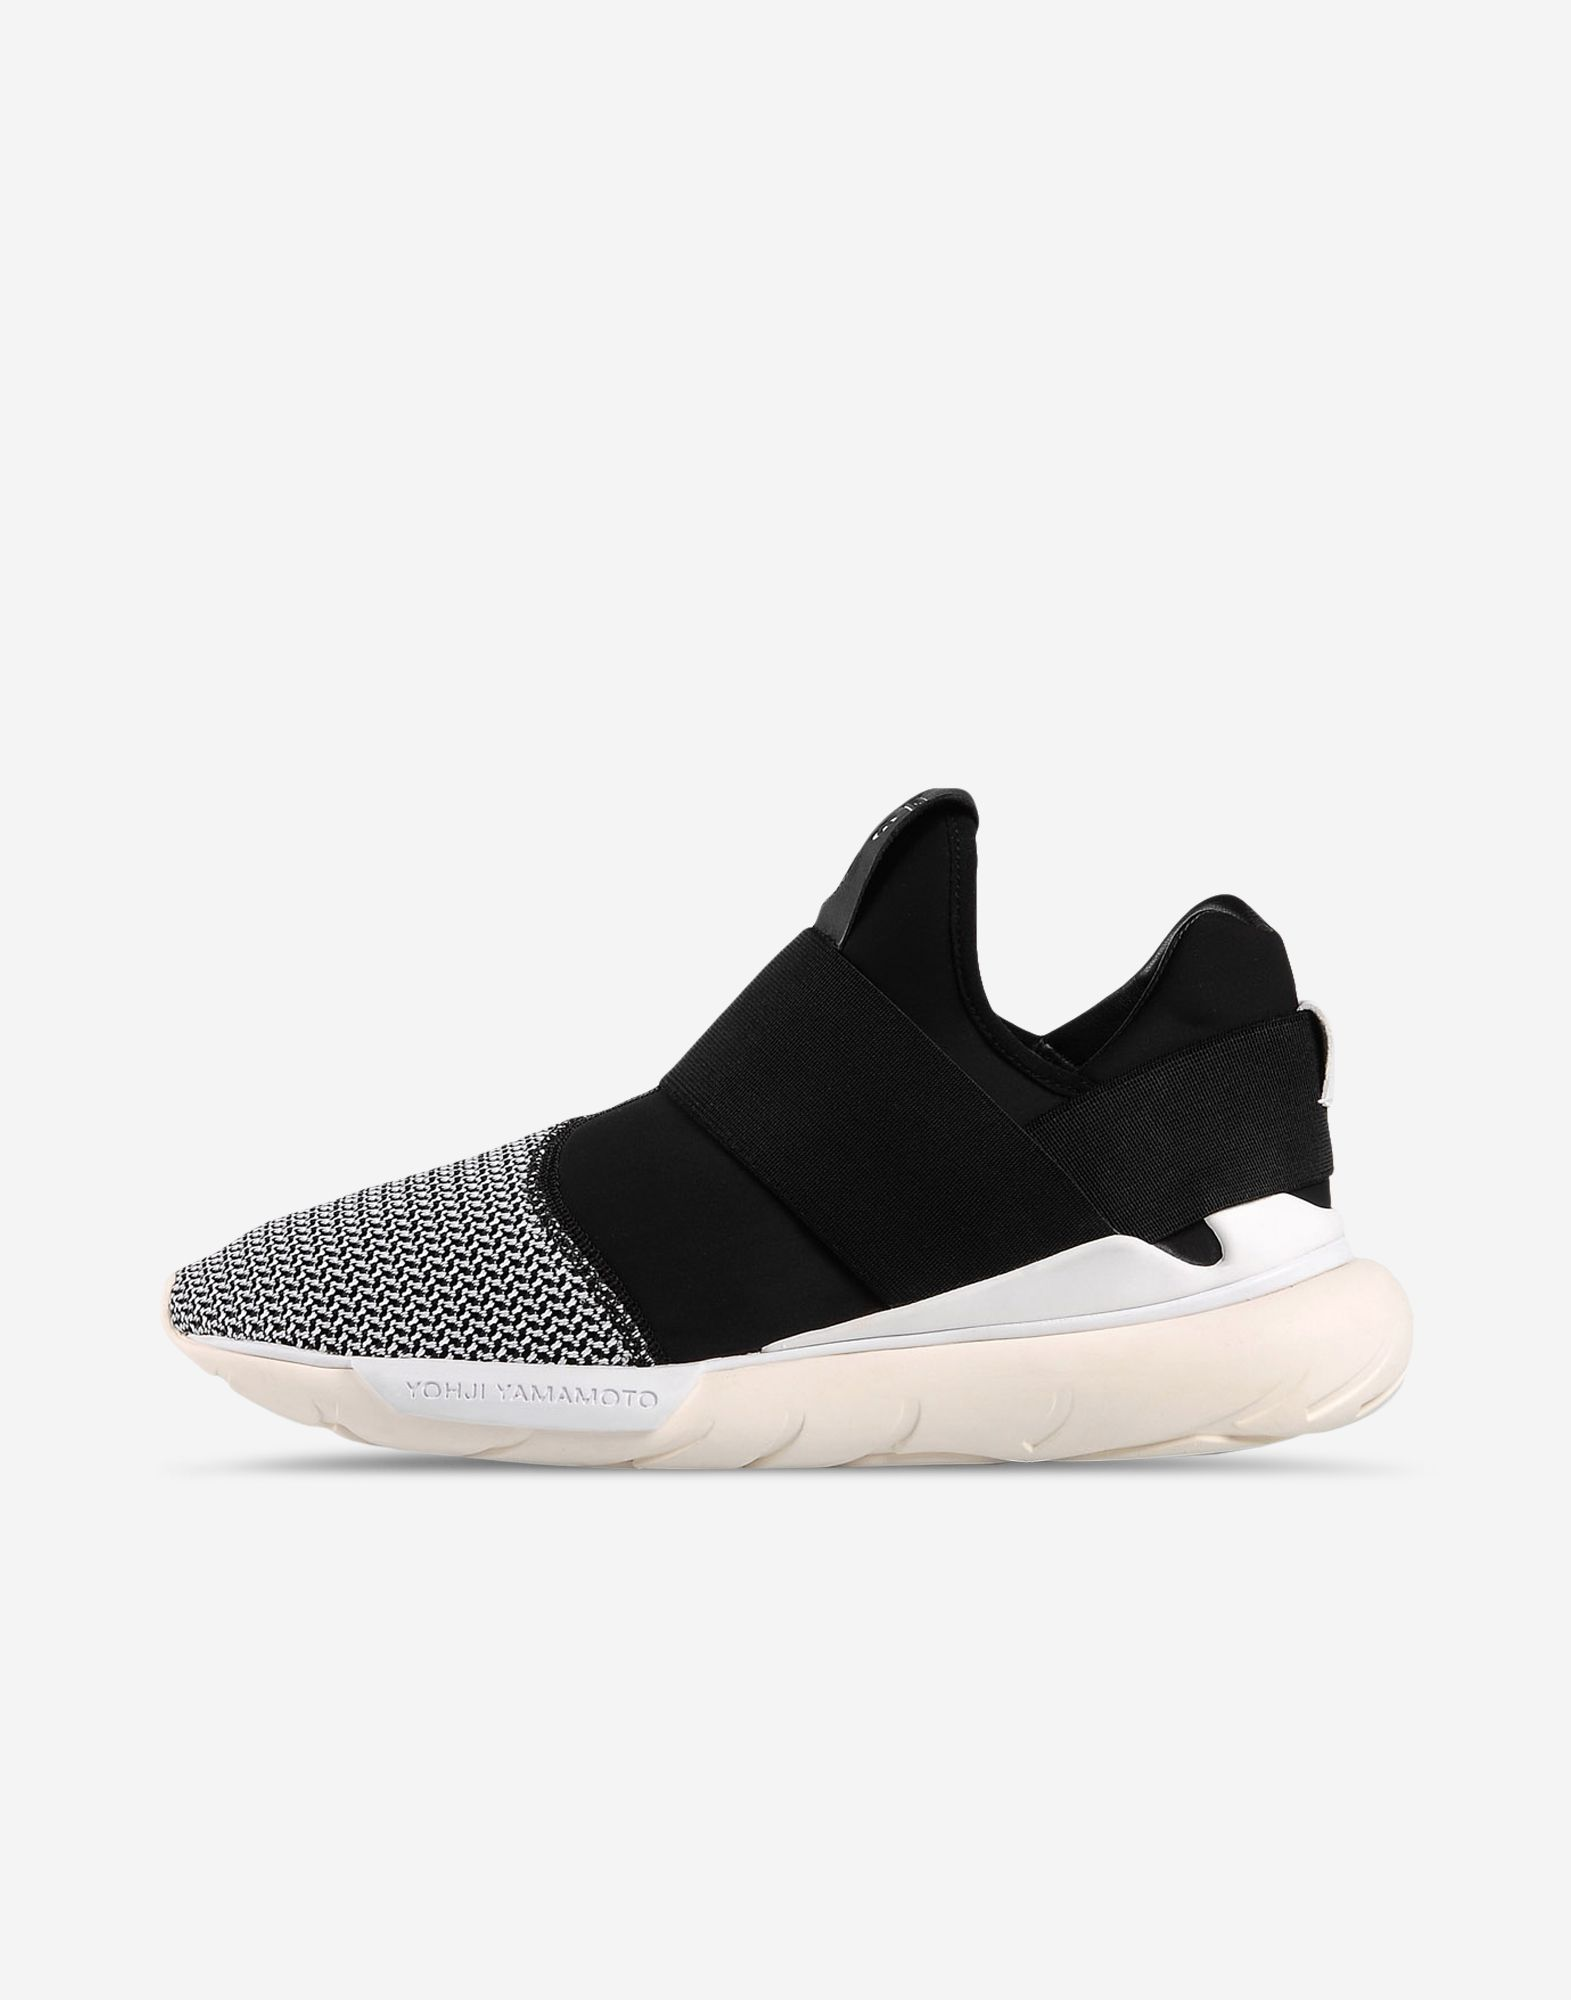 ... Y-3 Y-3 Qasa Low II Sneakers Man f ... 48a1dc0b2